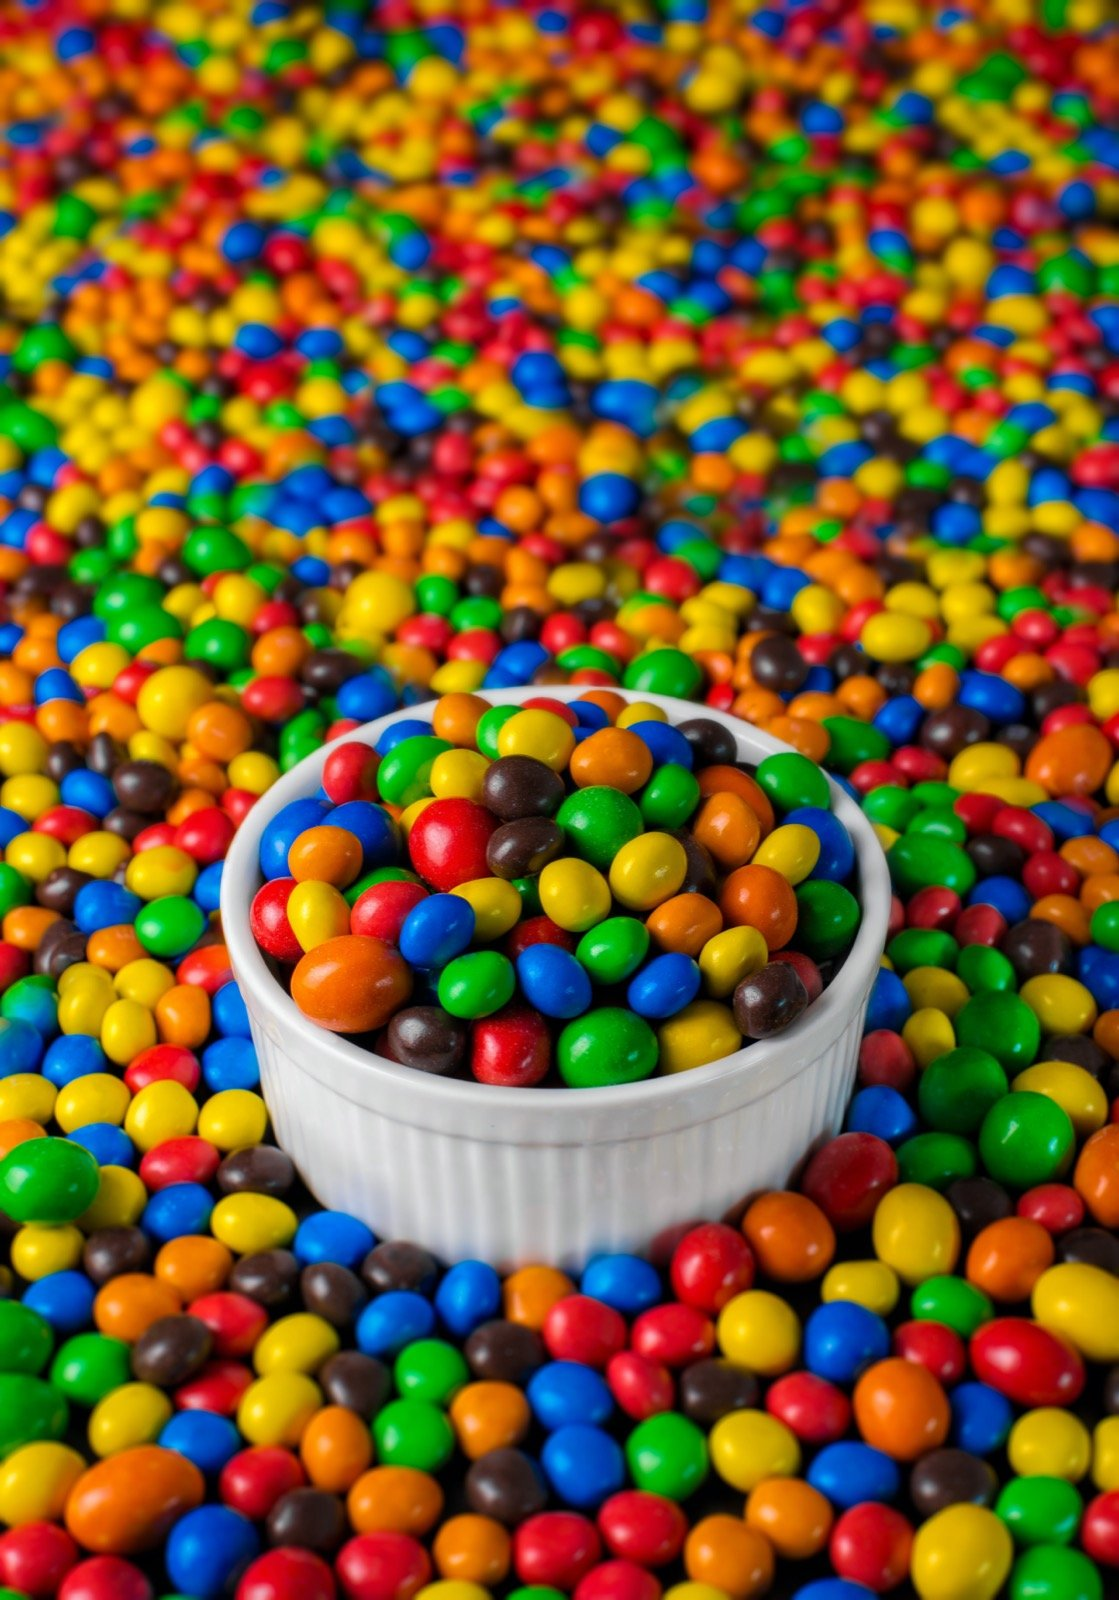 Colorful sweets resembling M&Ms in white ceramic bowl